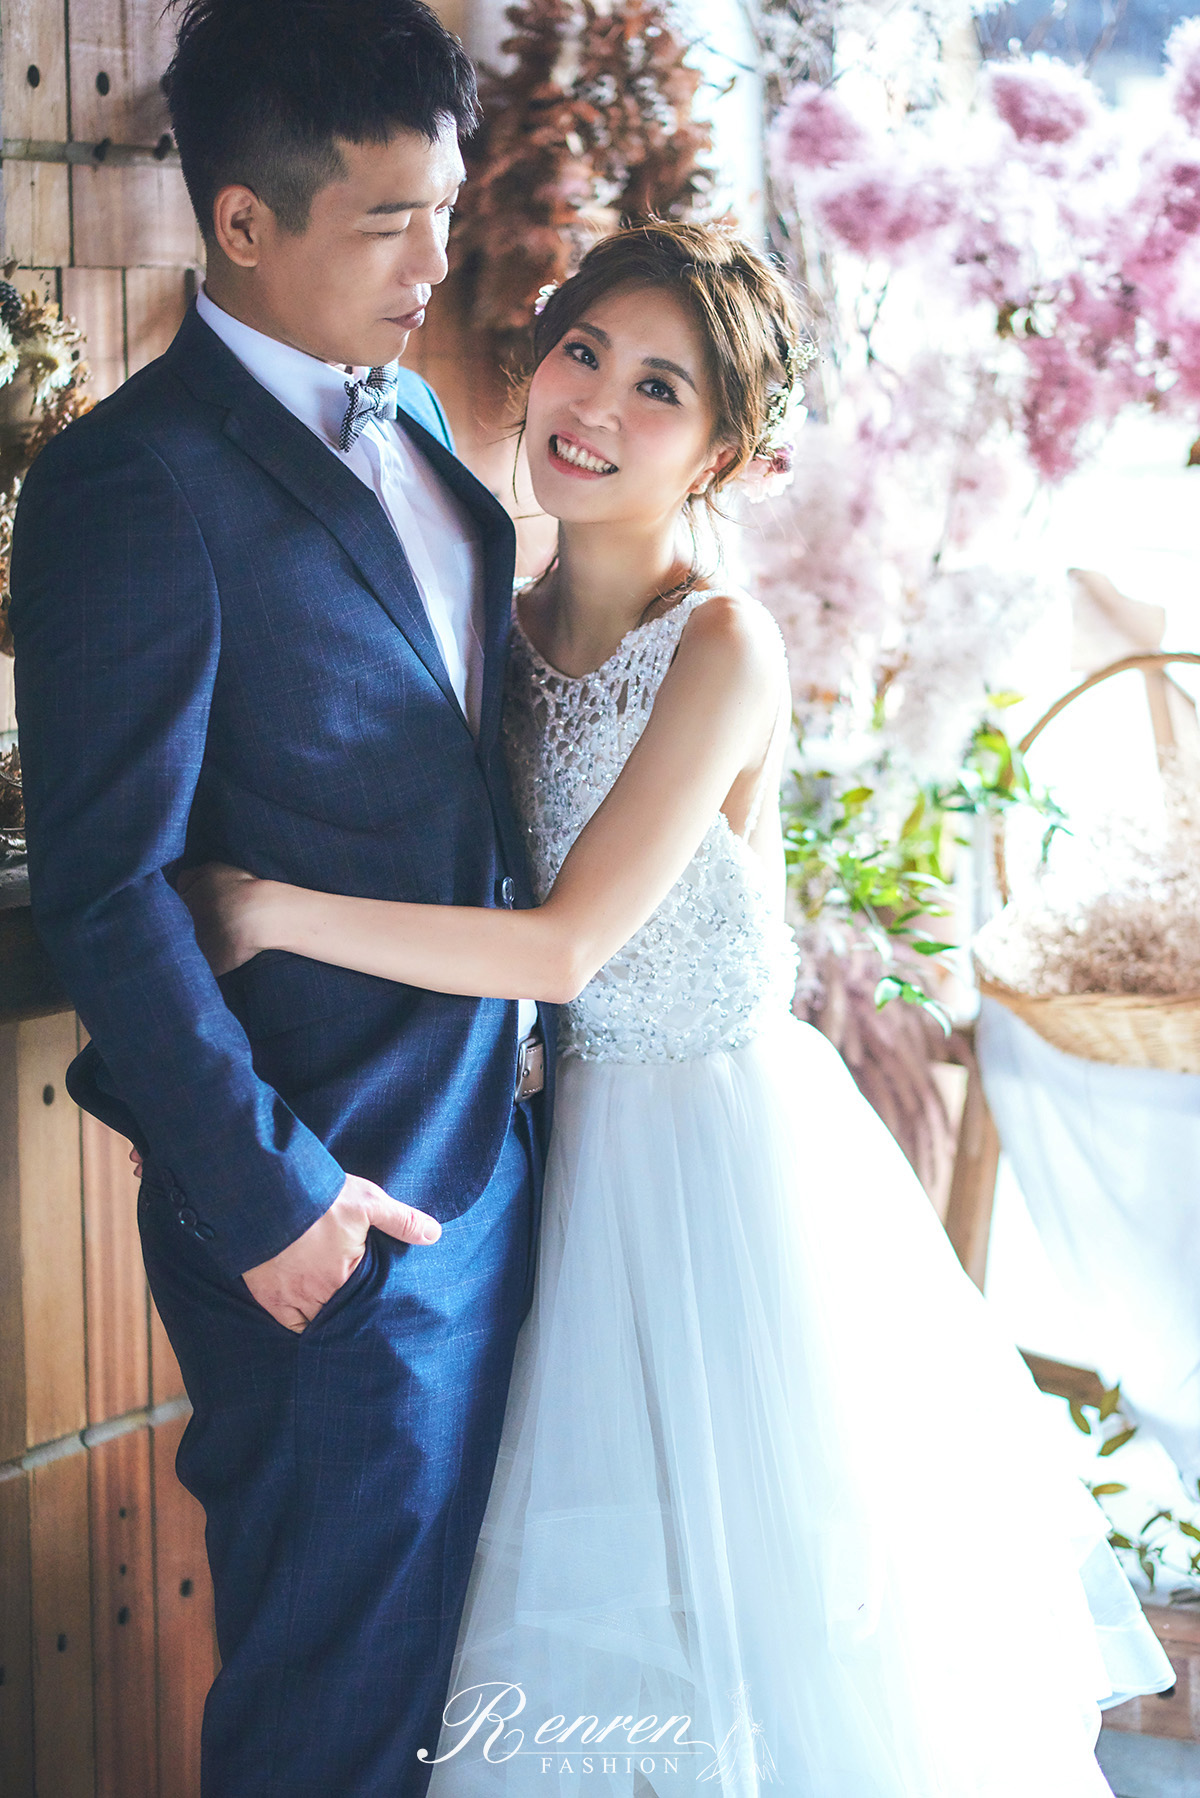 RenRen-Mundo-StylistMei-Wedding-顏氏牧場-婚紗-07